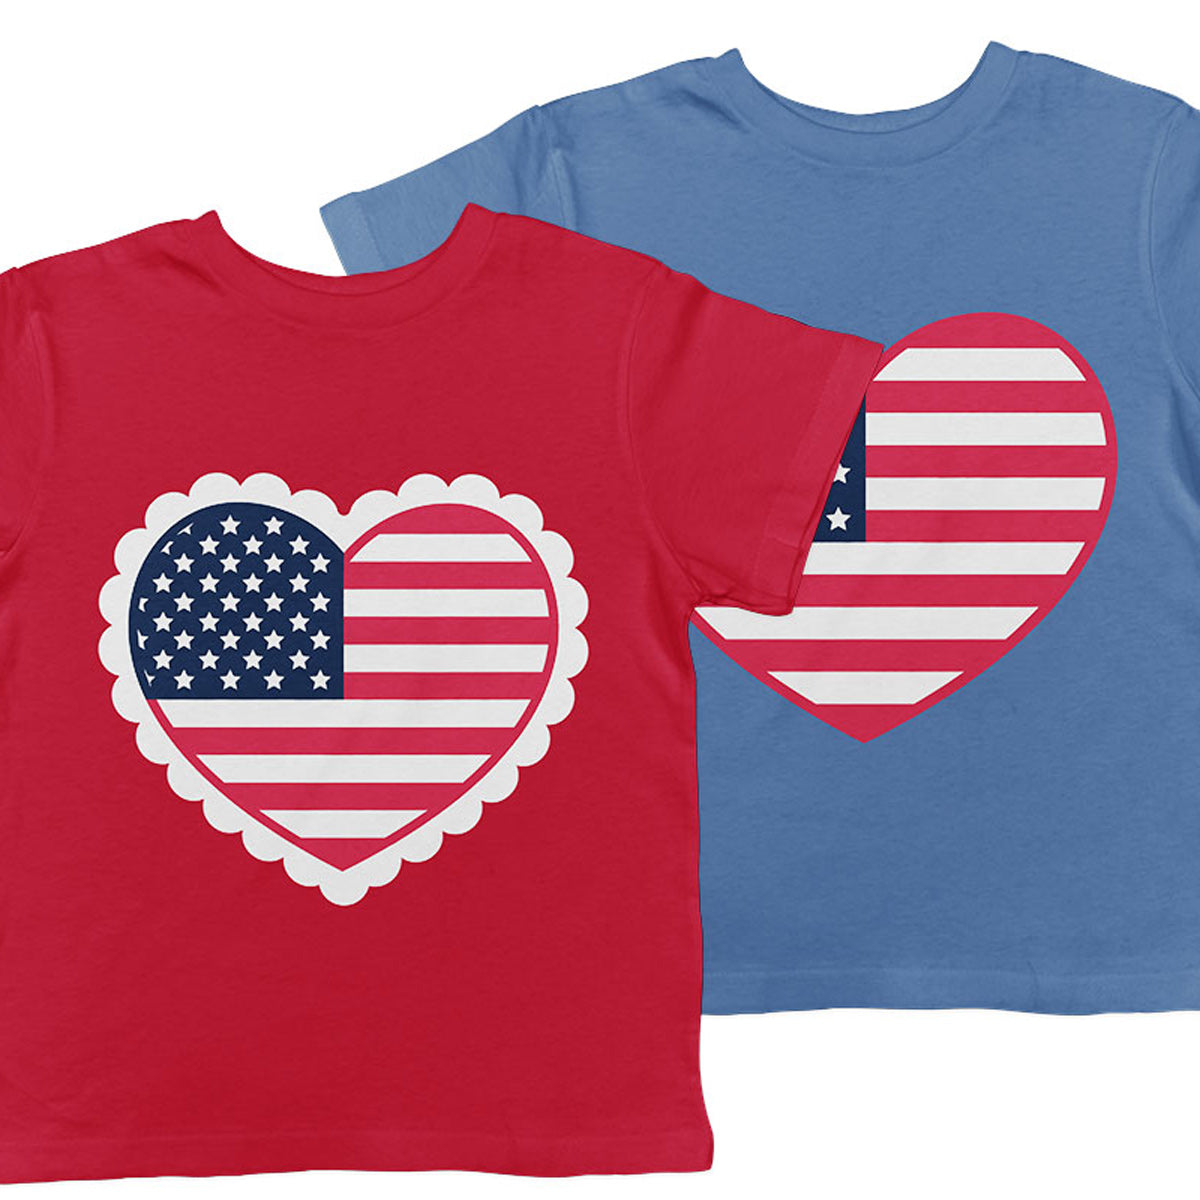 American Flag Heart svg files in plain border or scallop border - Free for Commercial Use